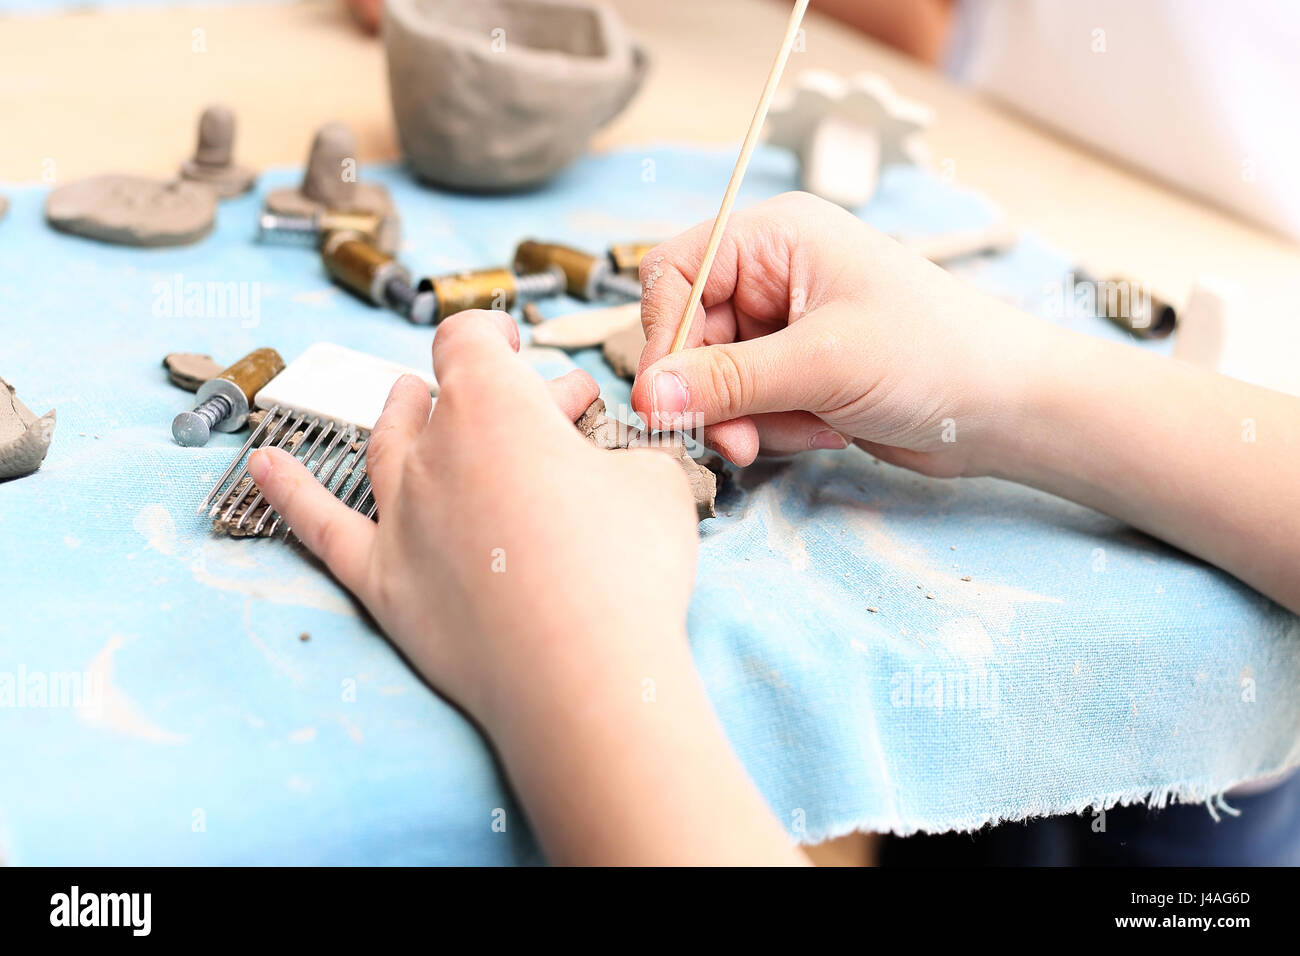 Ceramic course for children. The boy is clawing out of clay at a plastic workshop. Extracurricular activities, ceramics. - Stock Image